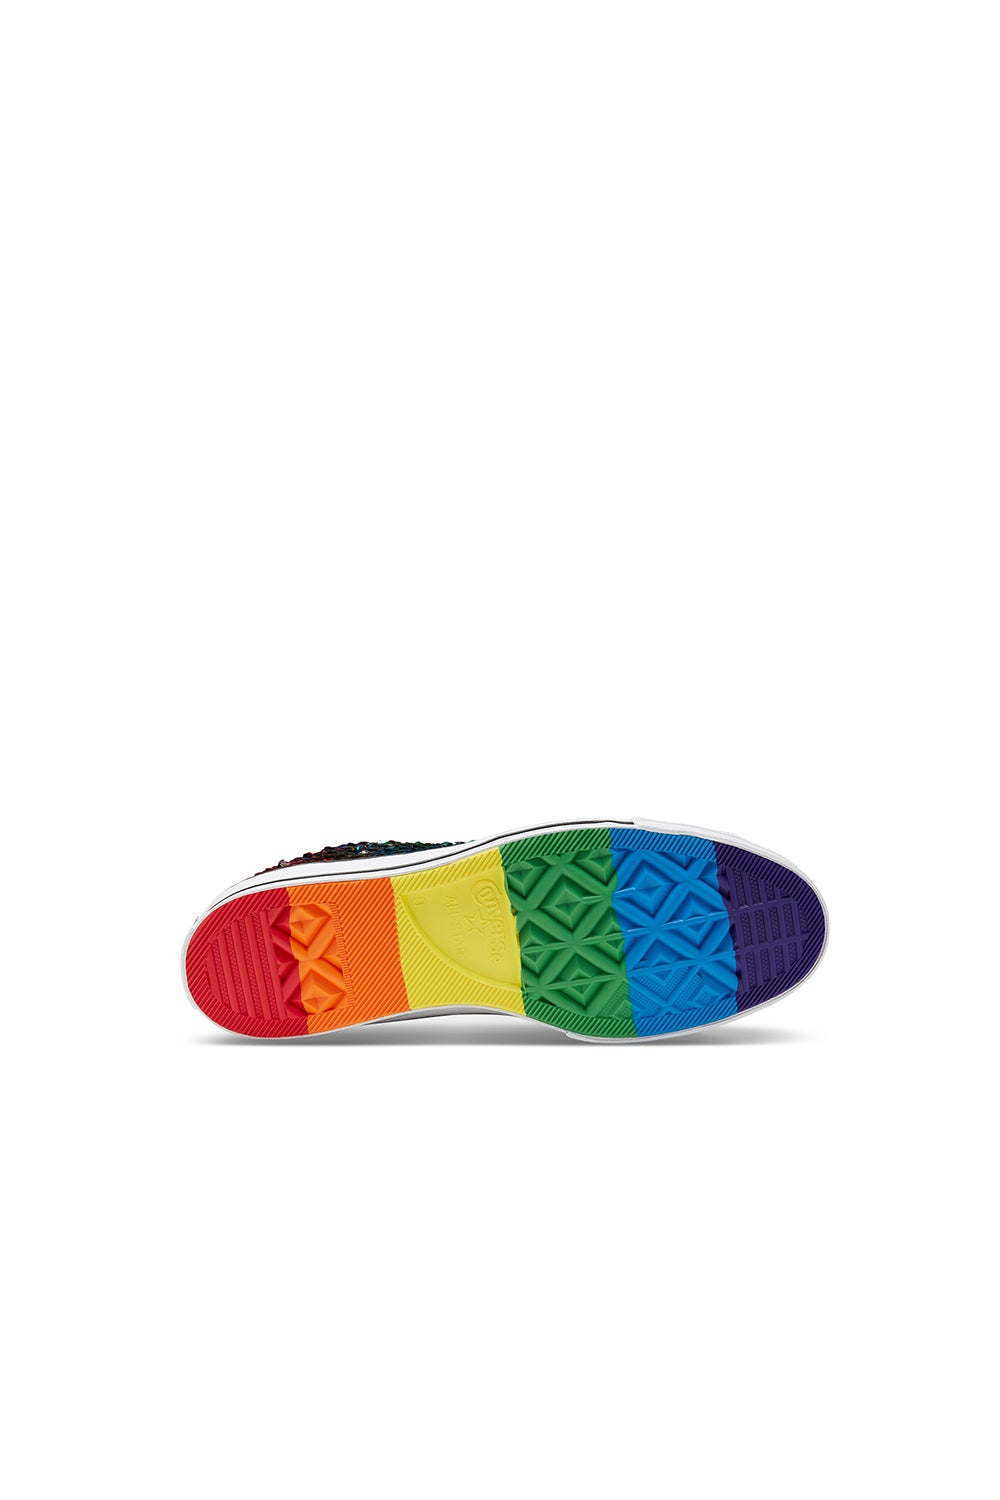 Converse Chuck Taylor 70 Pride High Top